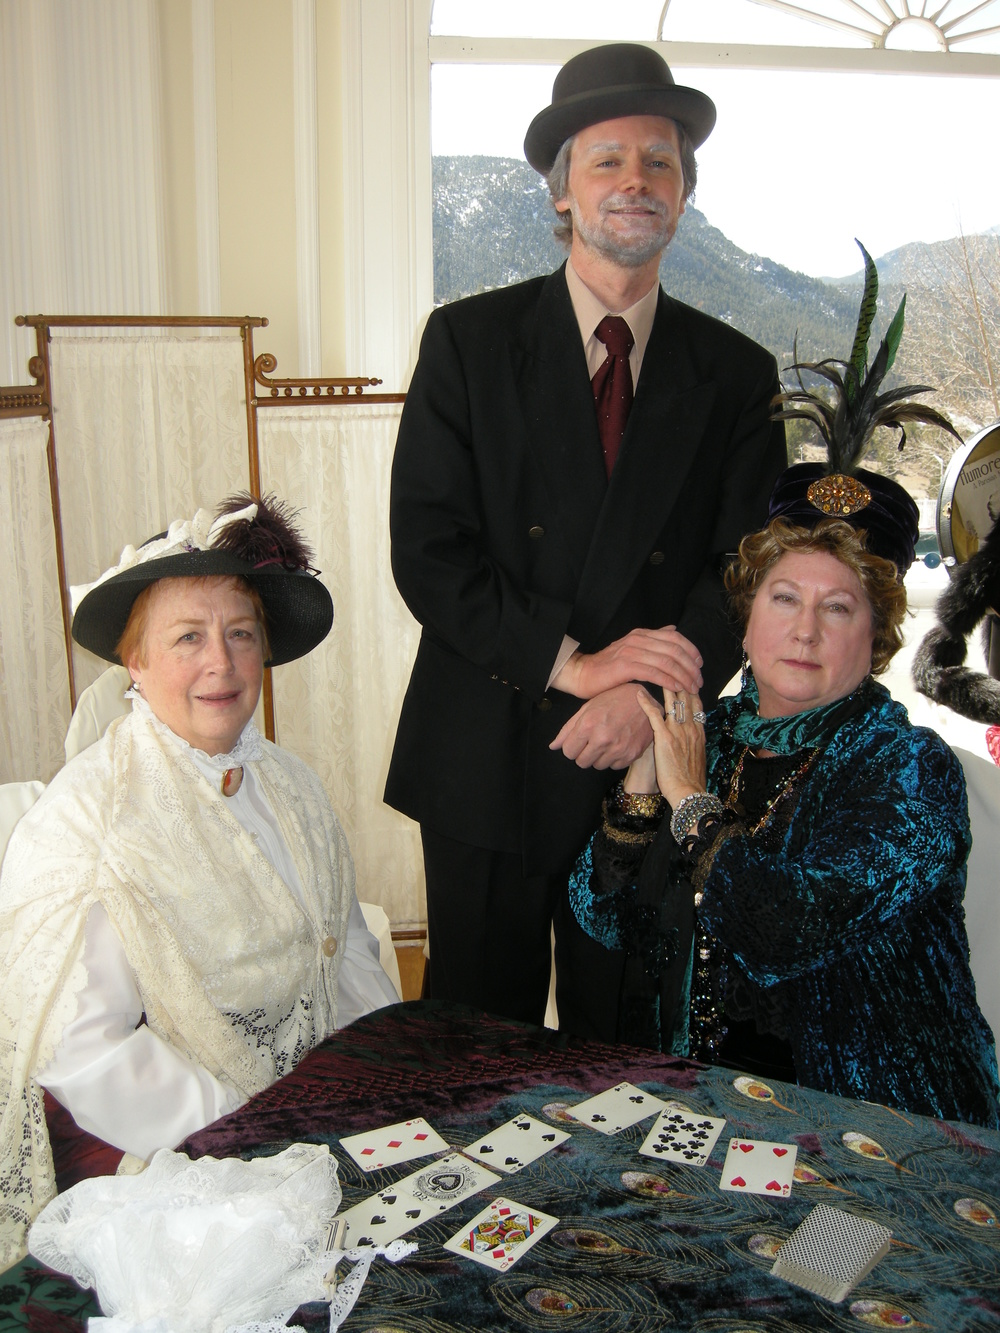 100-year Celebration, Estes Park Women's Club